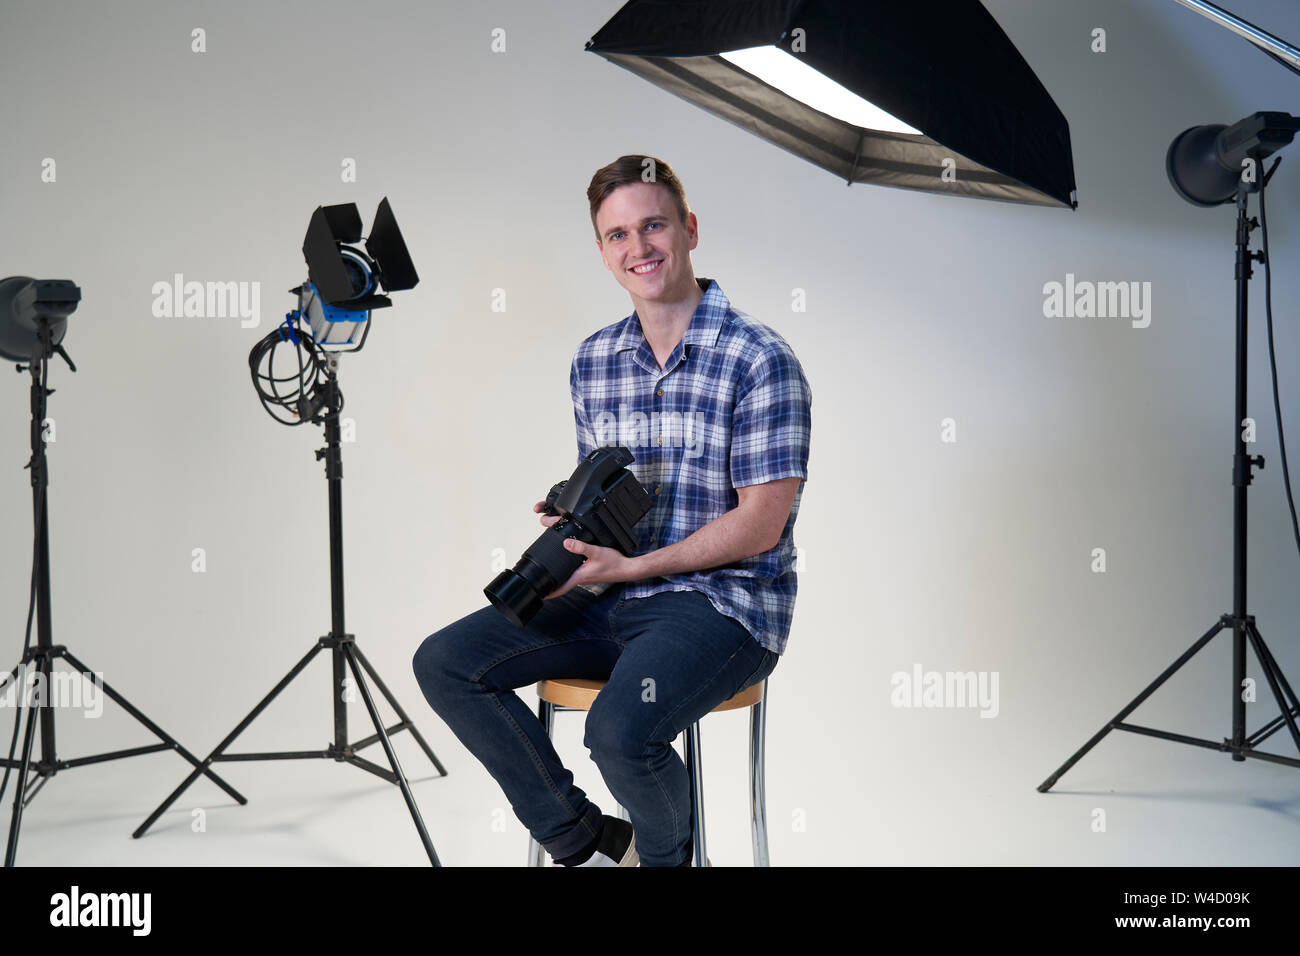 Portrait Of Male Photographer In Studio For Photo Shoot With Camera And Lighting Equipment Stock Photo